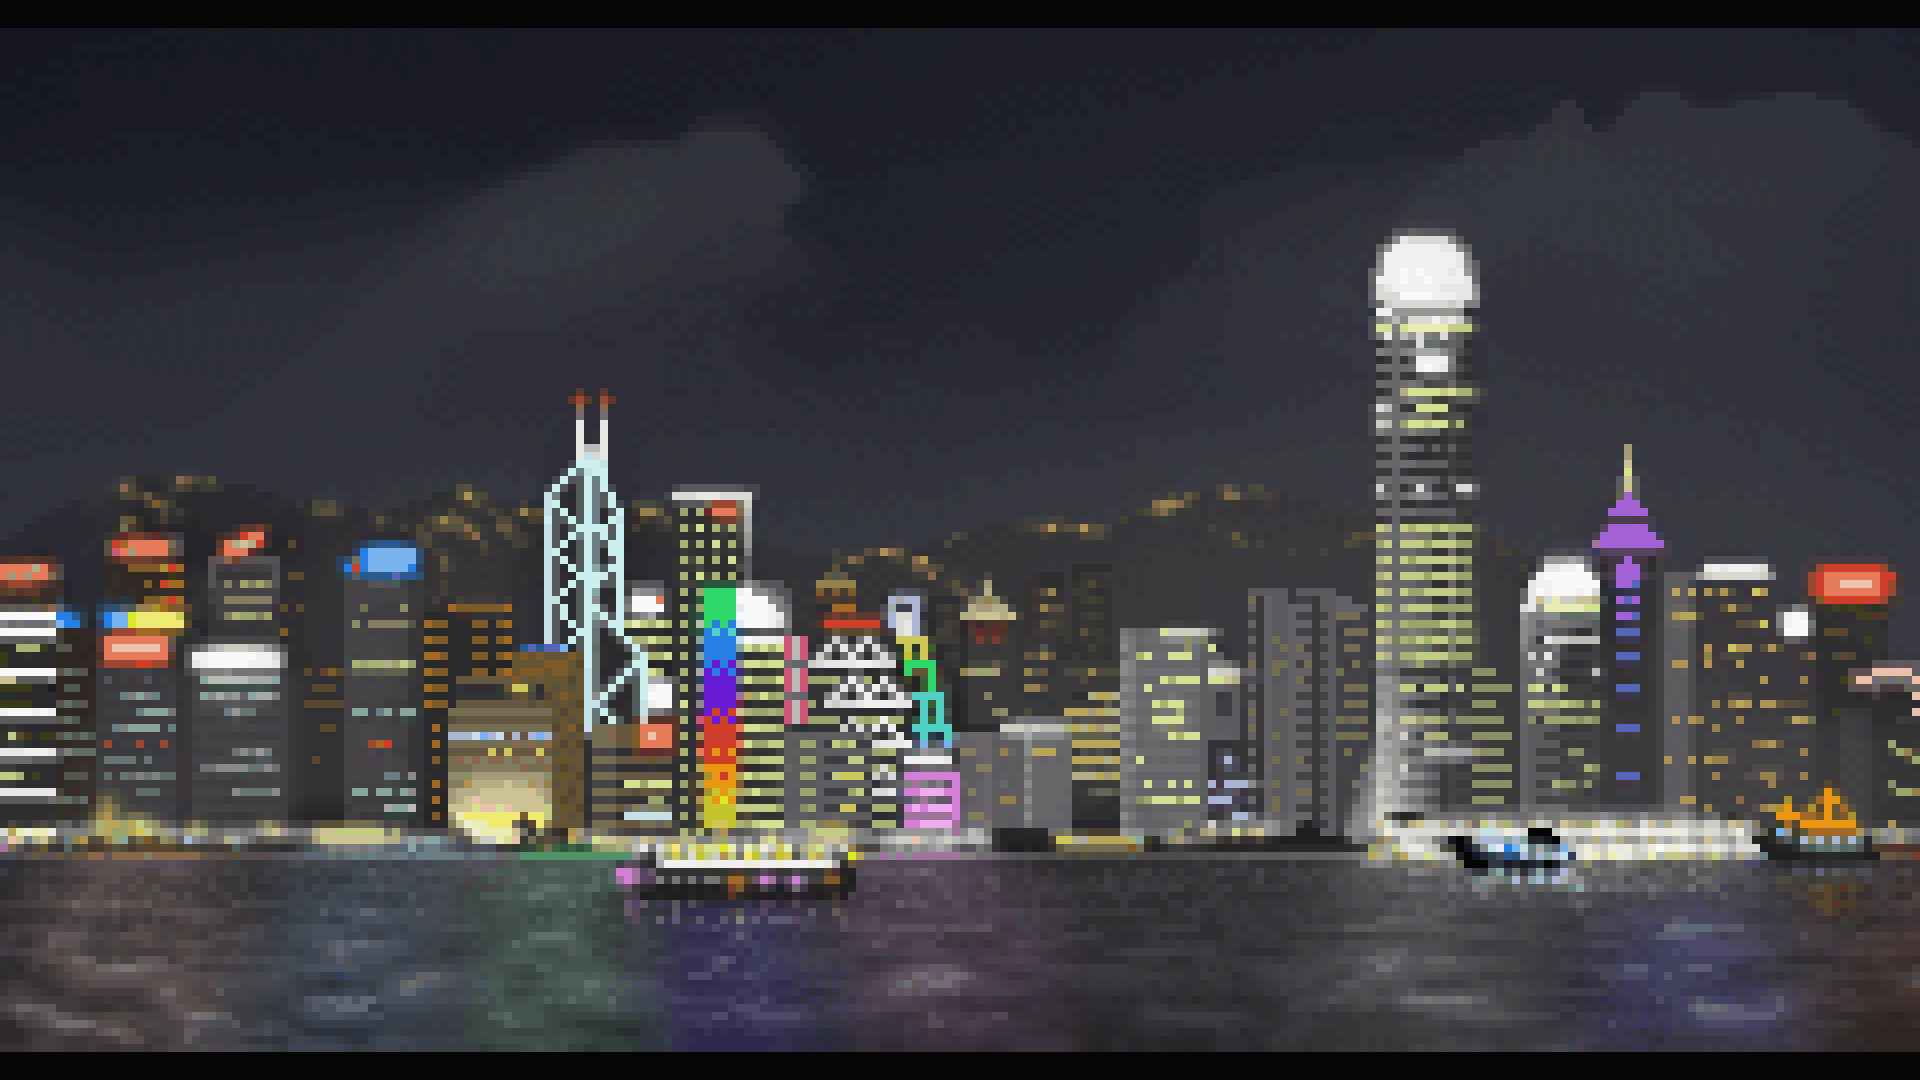 Raspberry Pi Wallpaper Hd Funemployment Project One Pixel Art Hong Kong